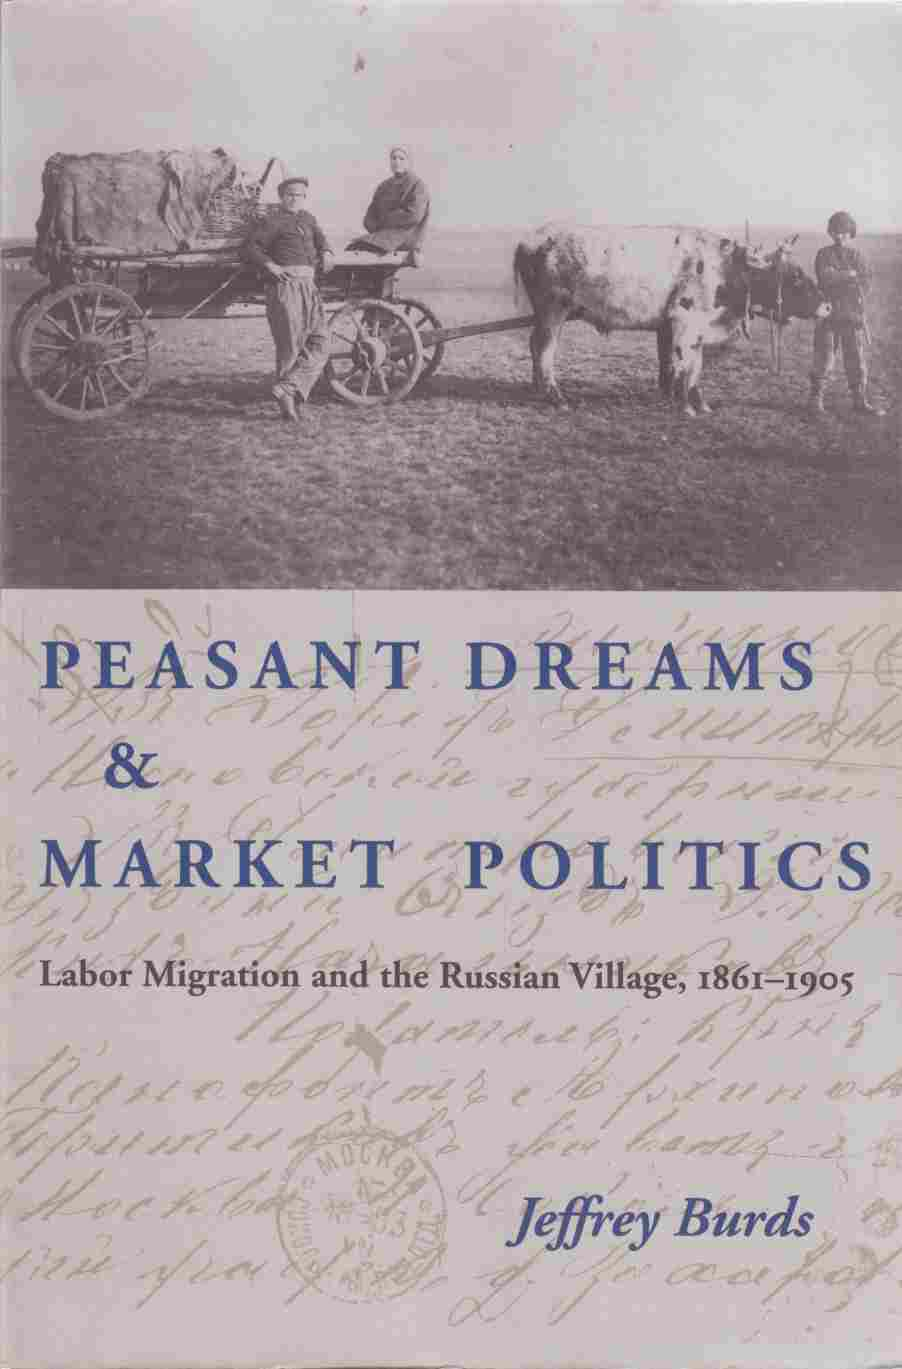 Image for Peasant Dreams & Market Politics Labor Migration and the Russian Village, 1861 - 1905